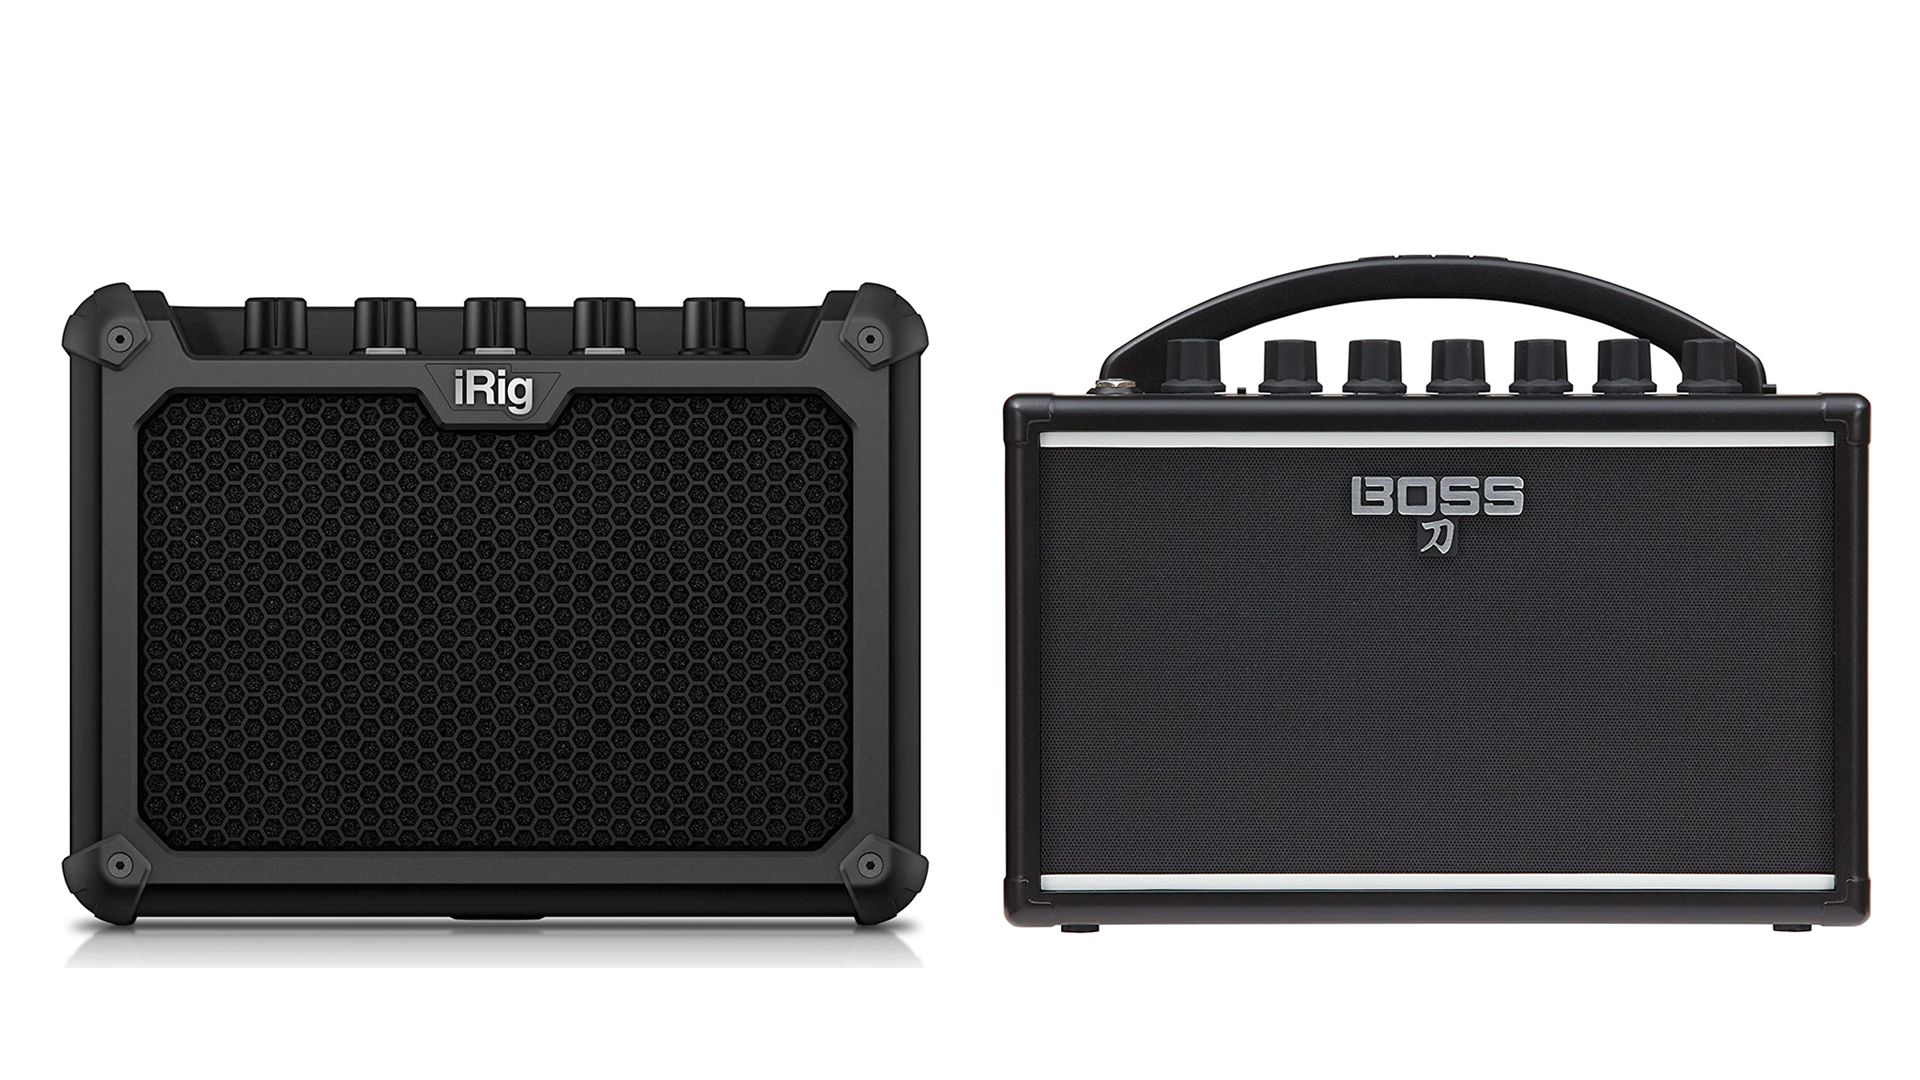 A photo of the iRig and Boss micro amps.